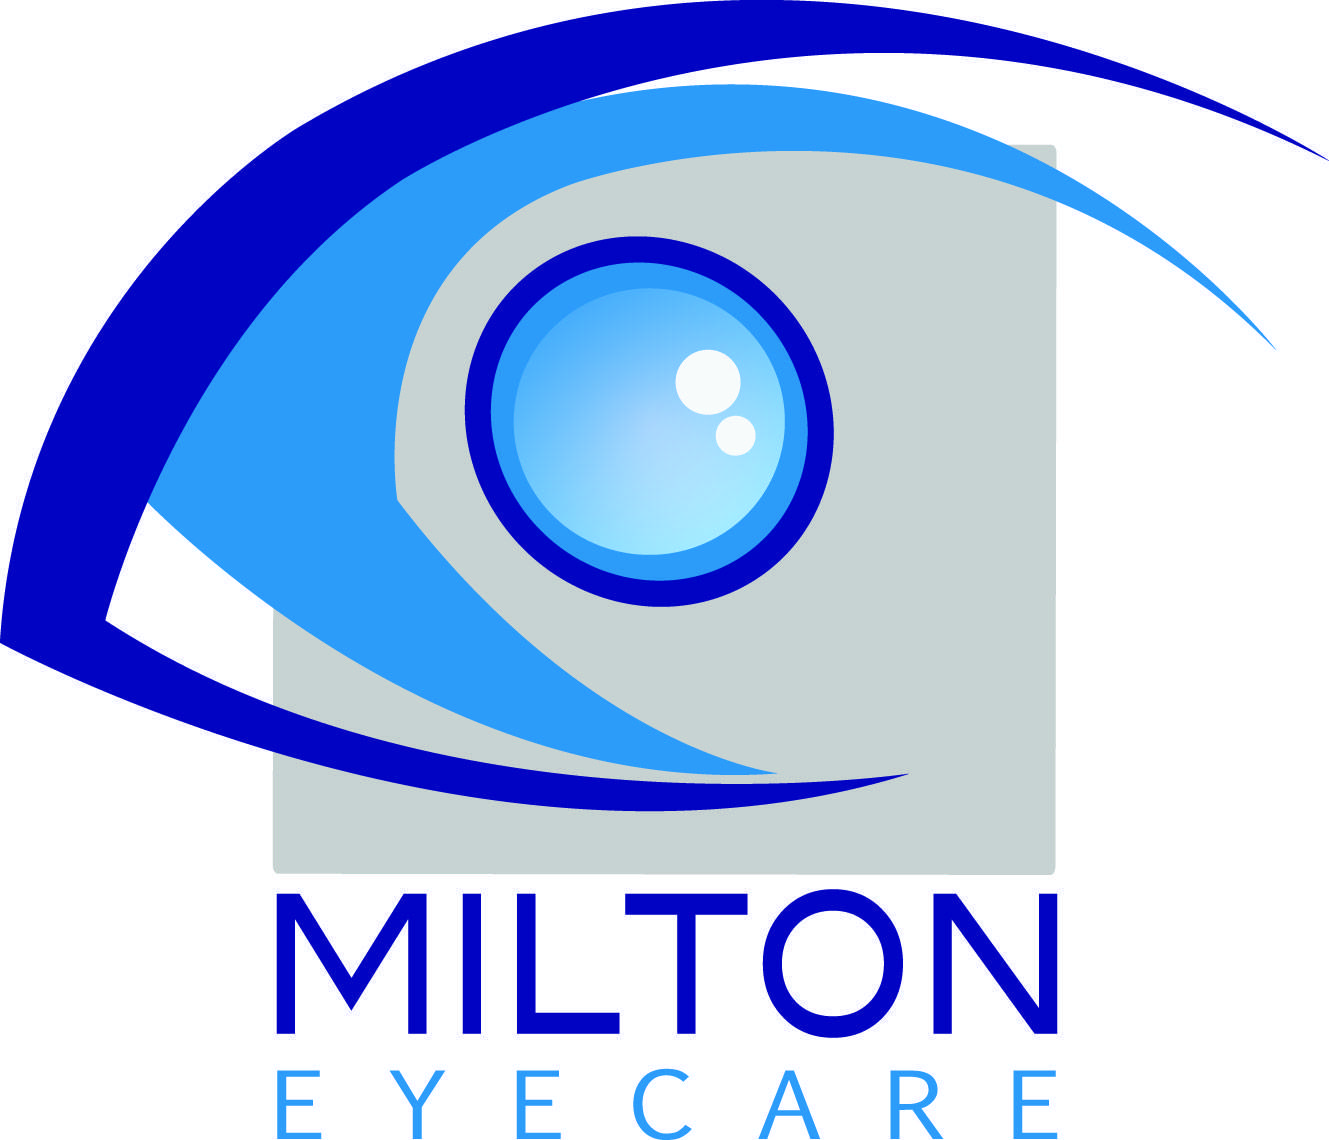 Milton Eye Care